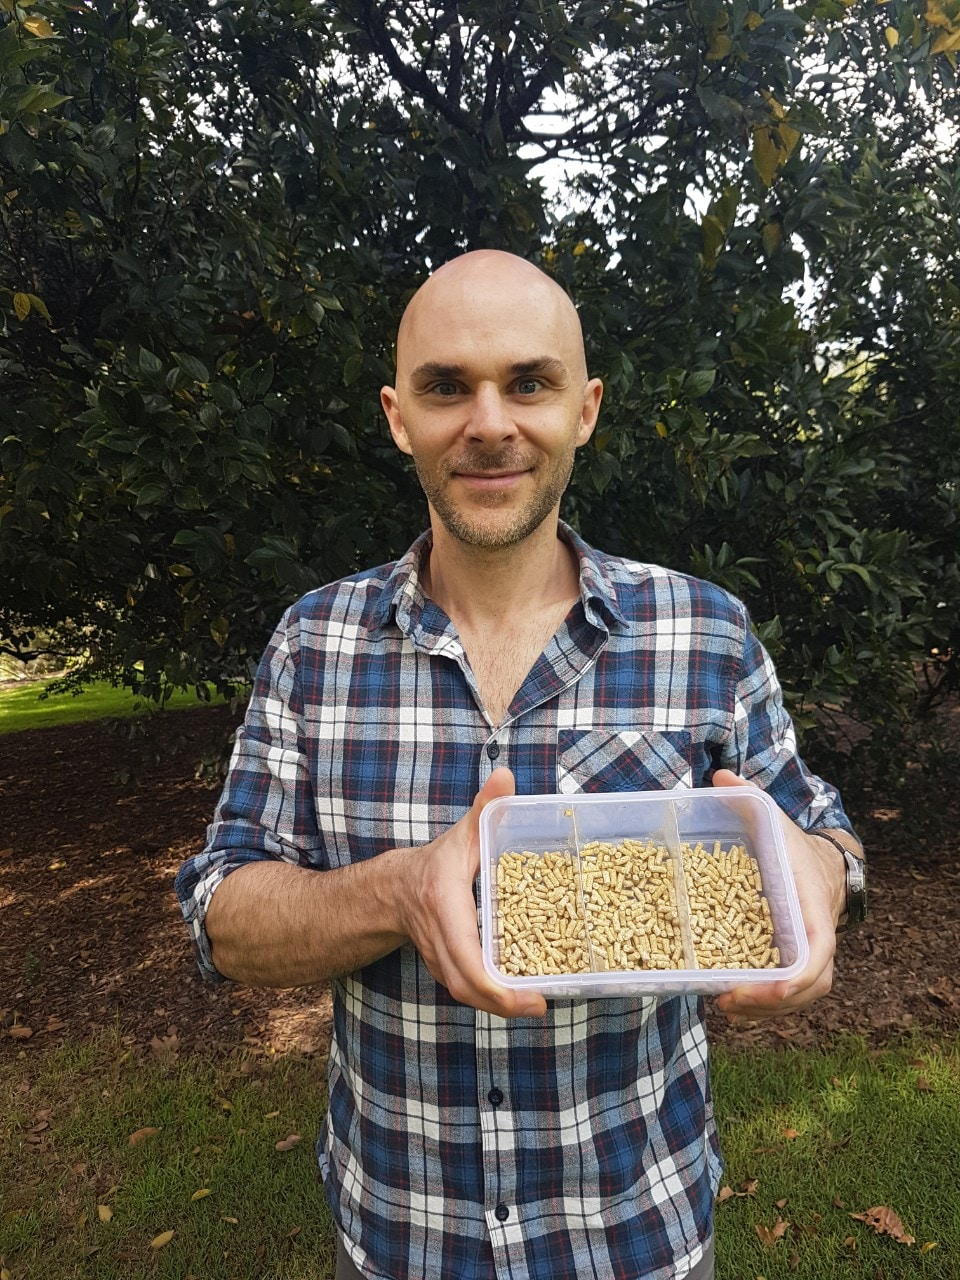 A photo of researcher Sean Coogan in Hyde Park Sydney, with container of ibis feed.